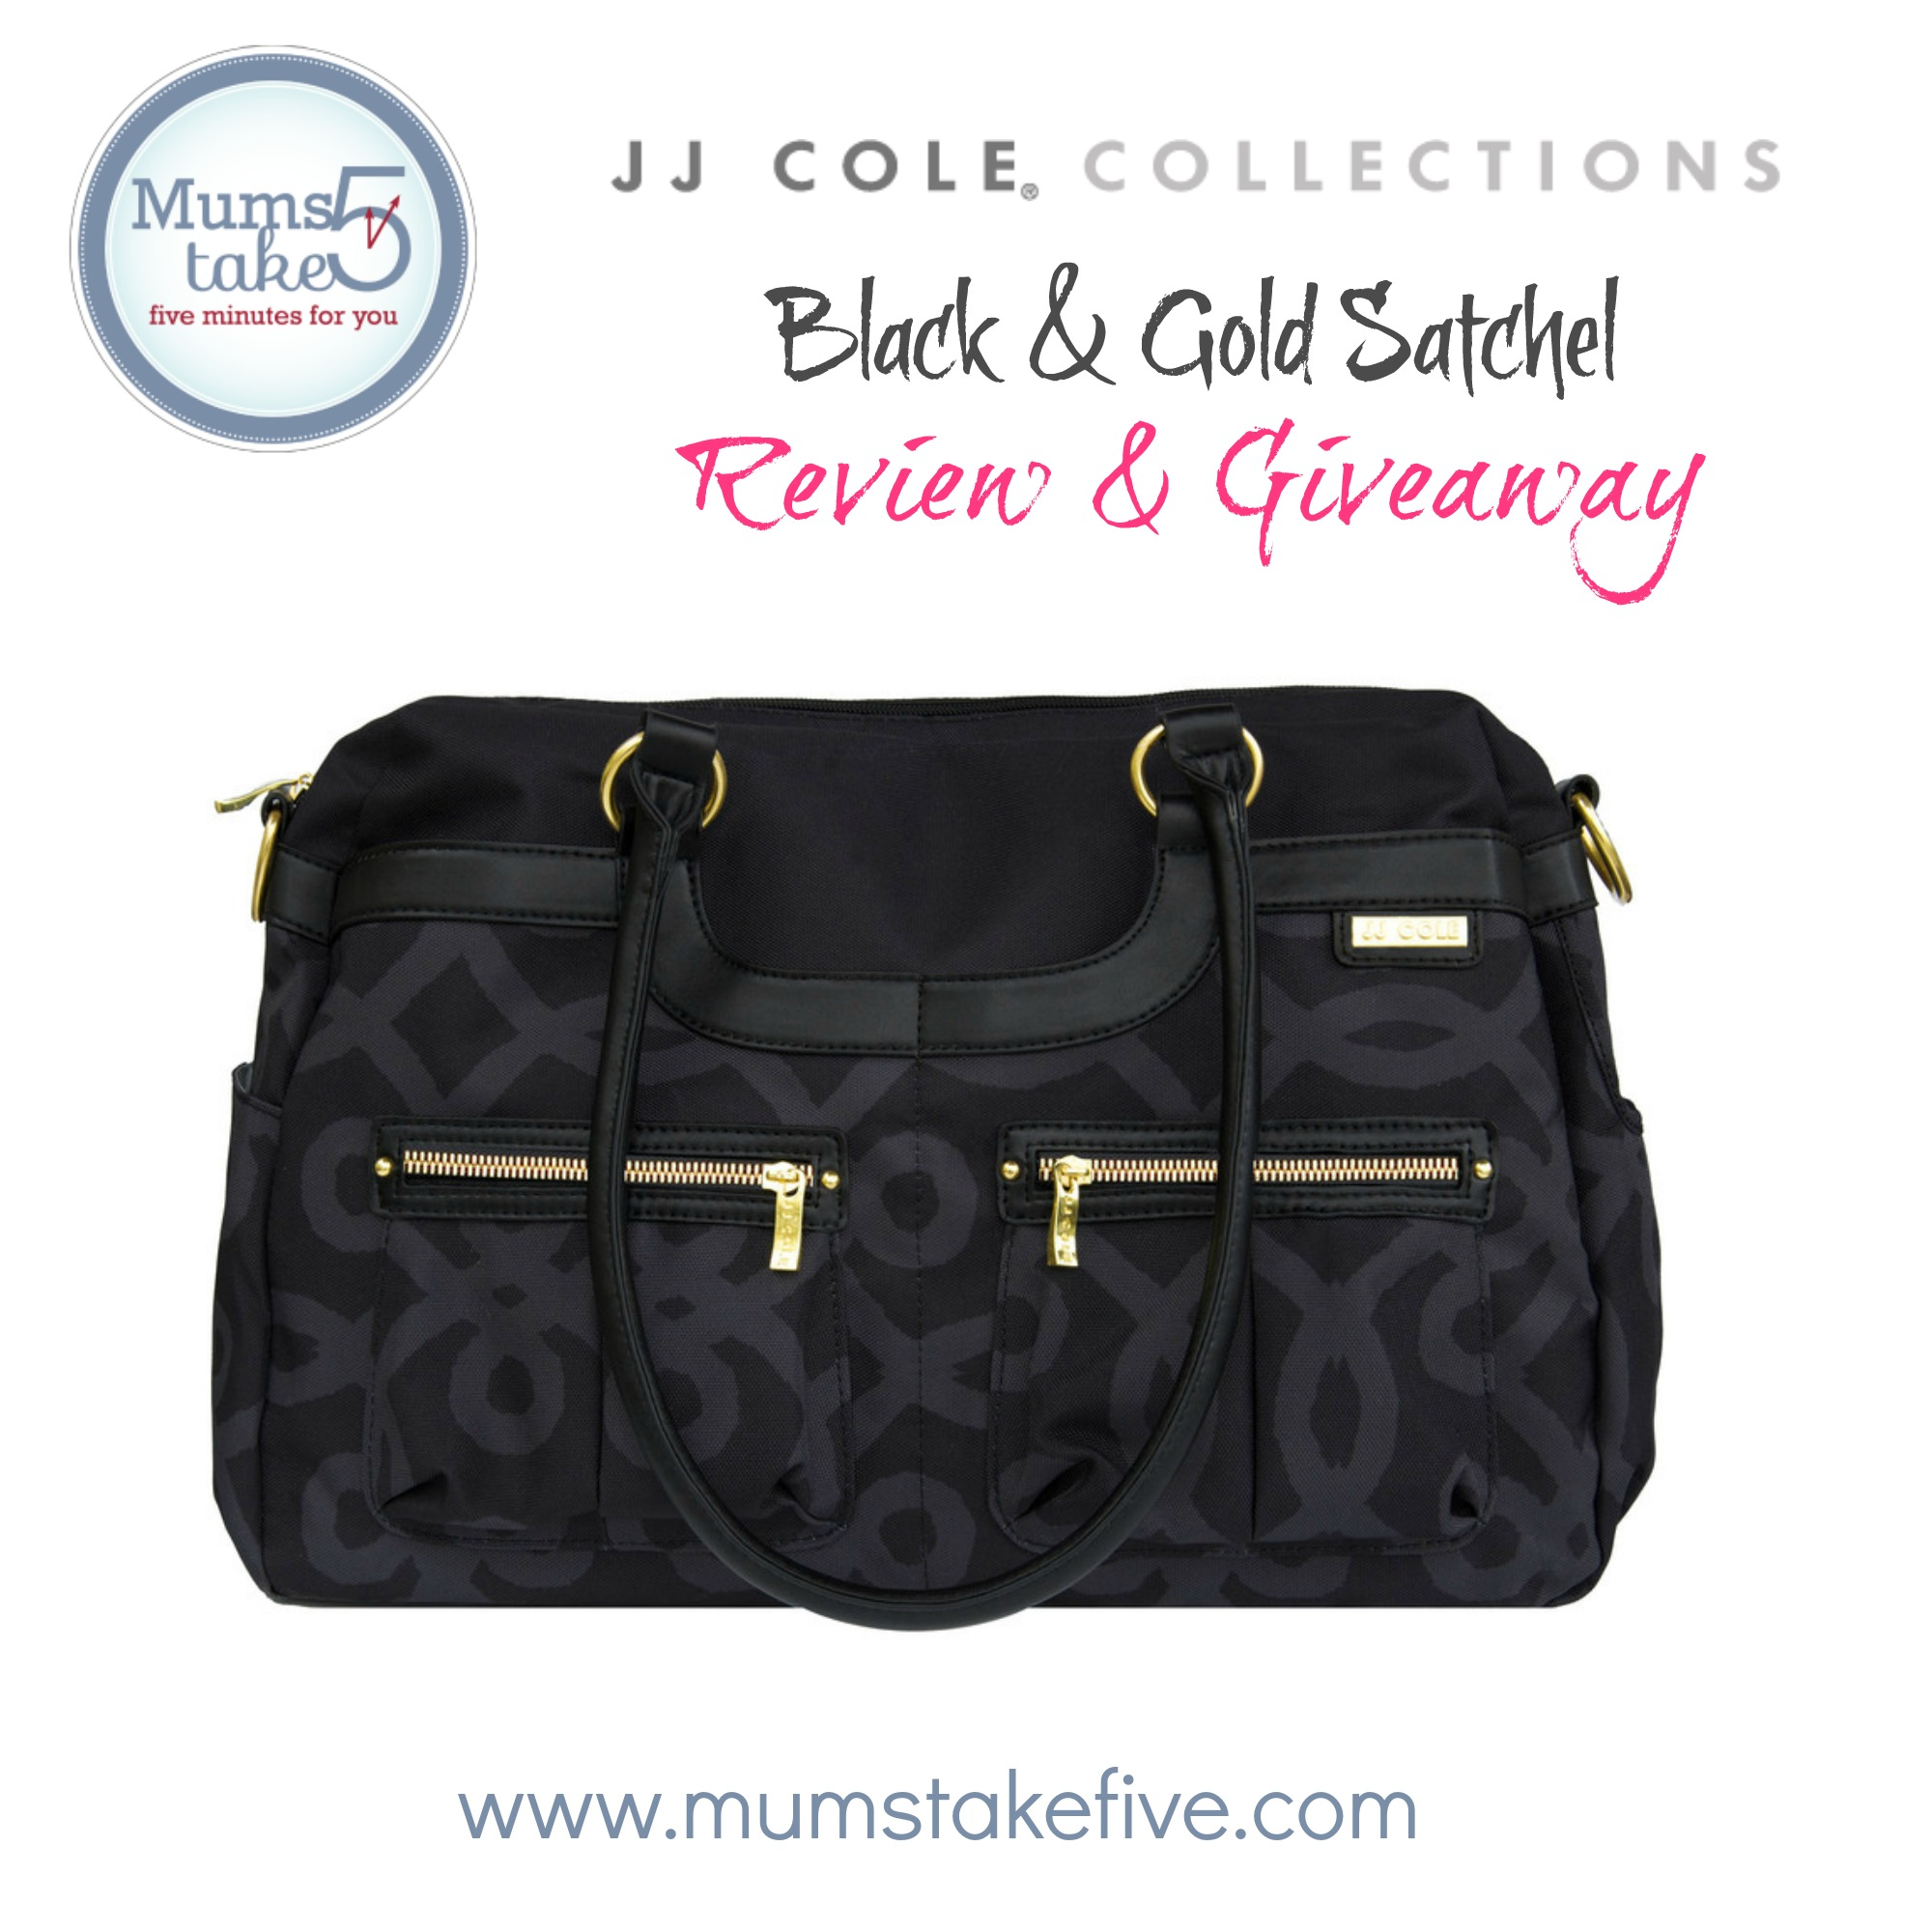 JJ Cole Collections Nappy Bag Review